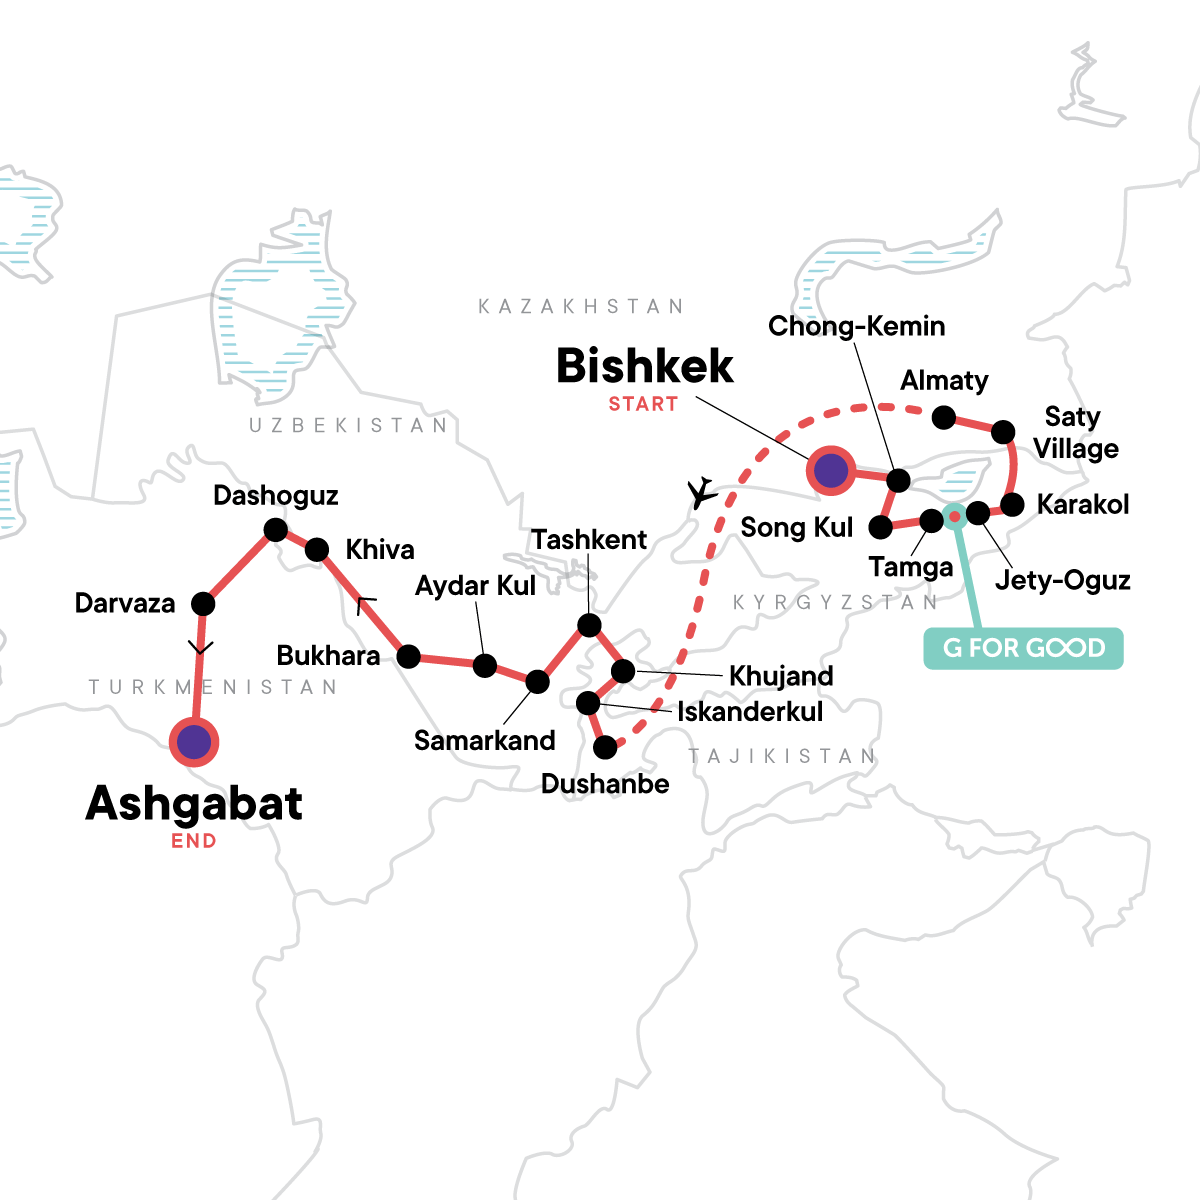 The Five Stans of the Silk Road Map